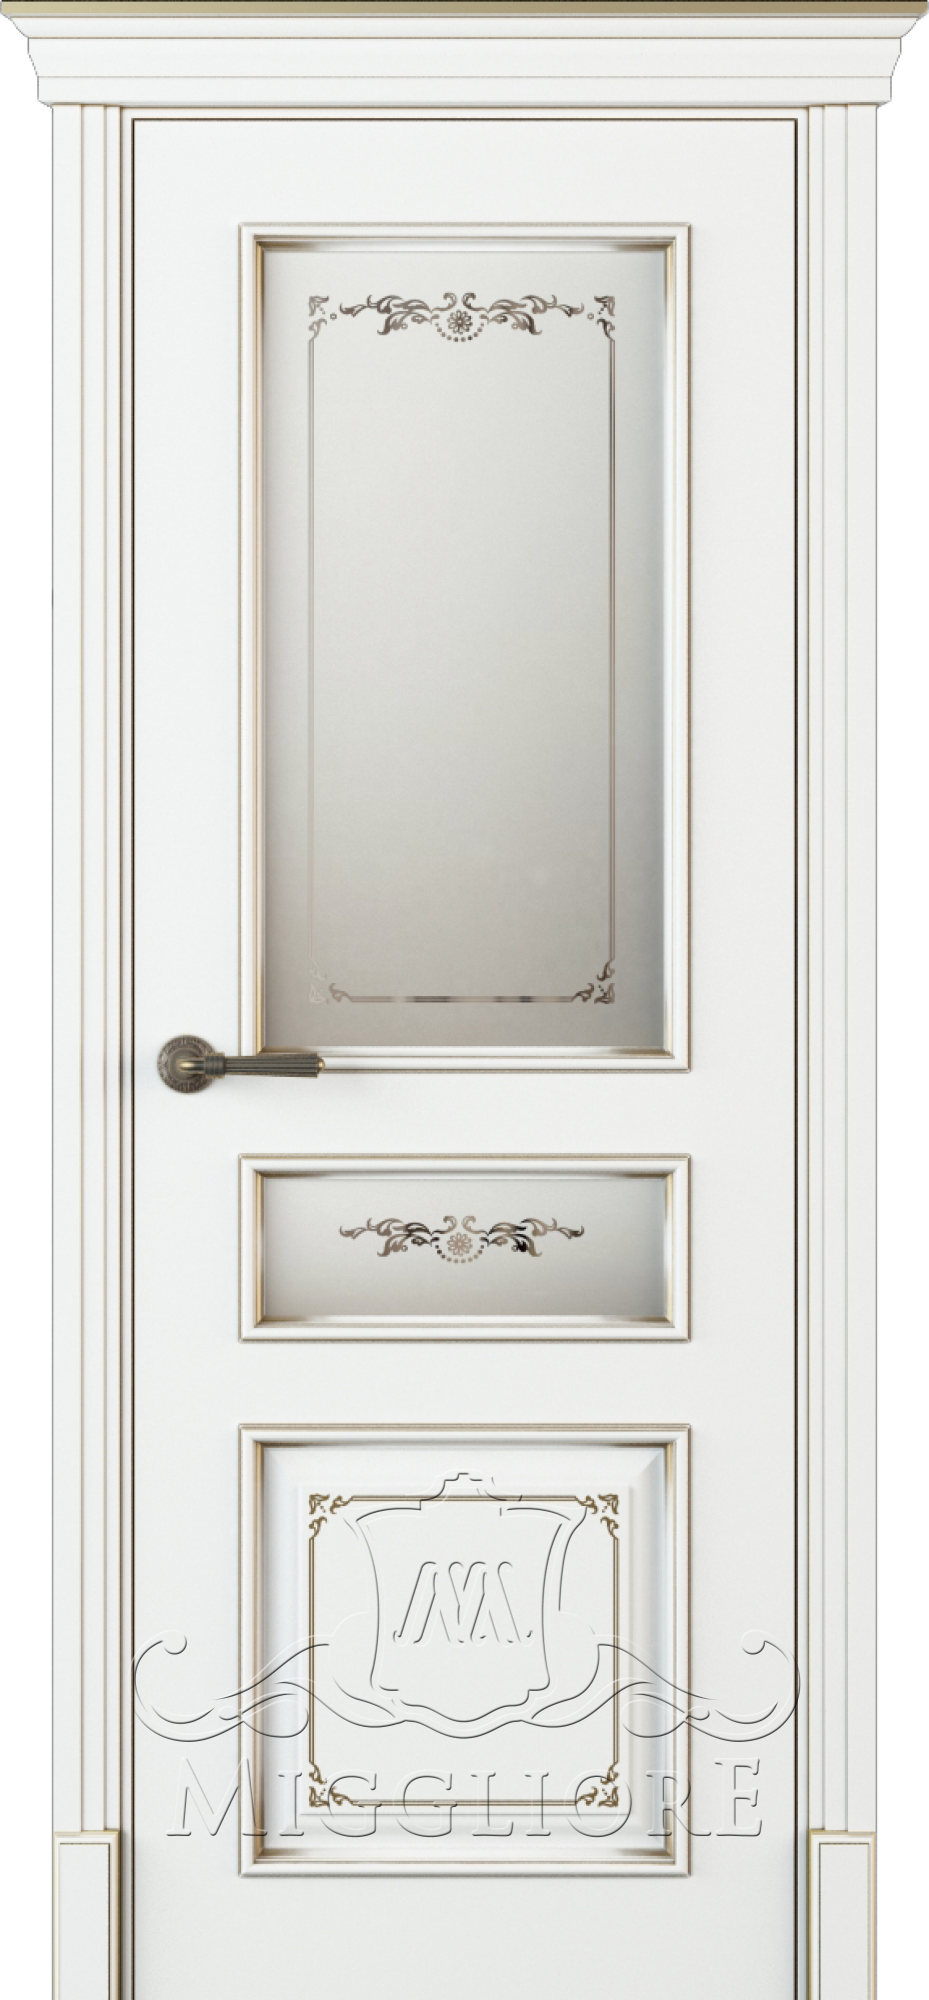 FLEURANS PALE ROYAL ML054 V-S-2 BIANCO PATINATO ORO